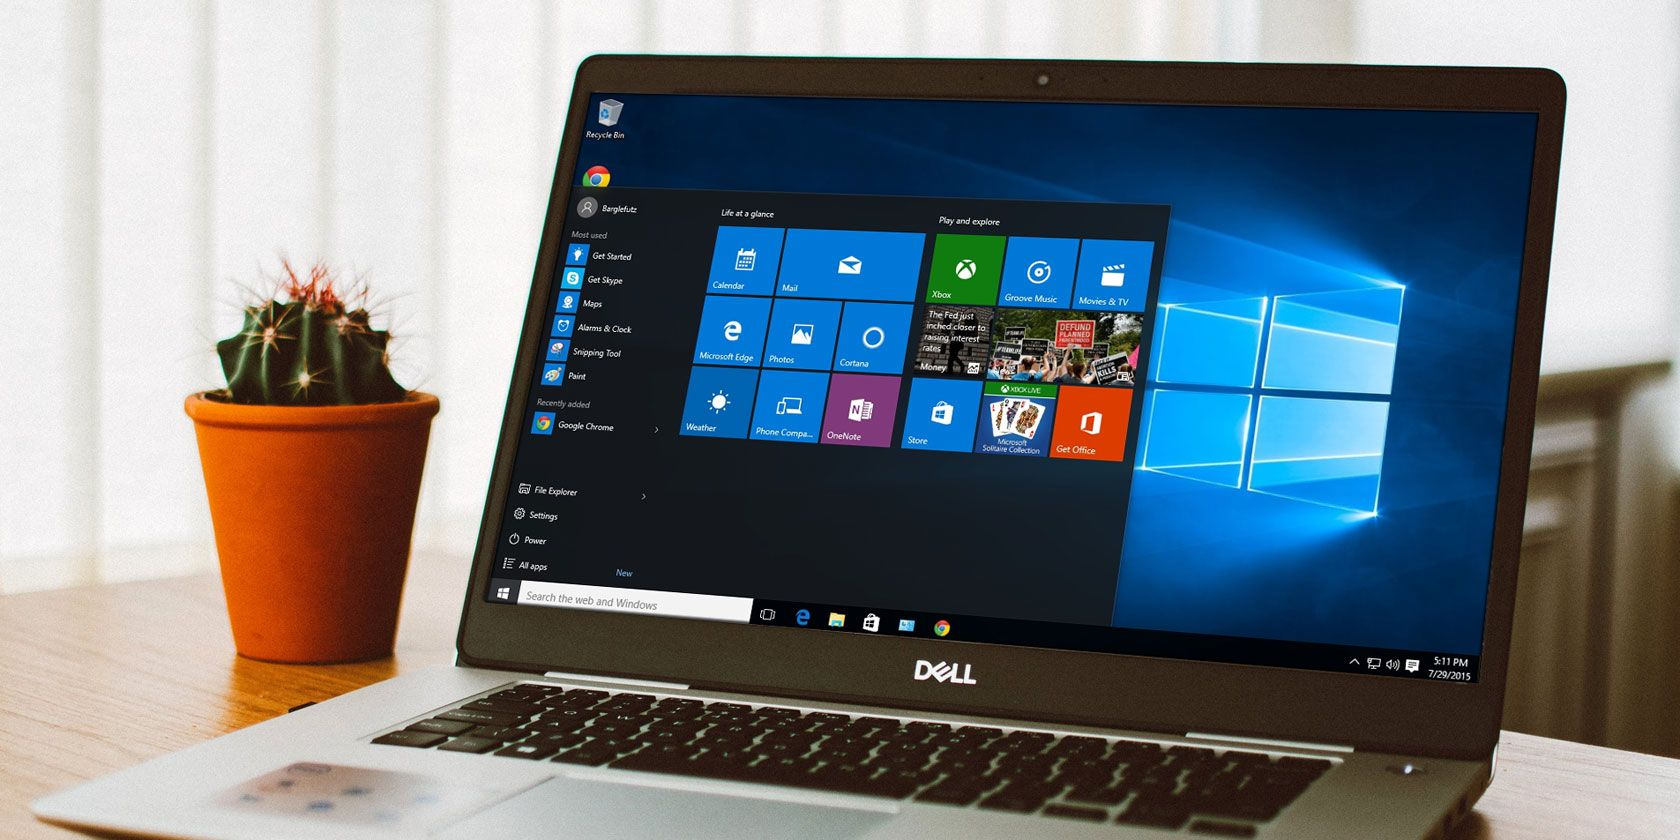 How to Screenshot on Windows Without Print Screen: 4 Methods